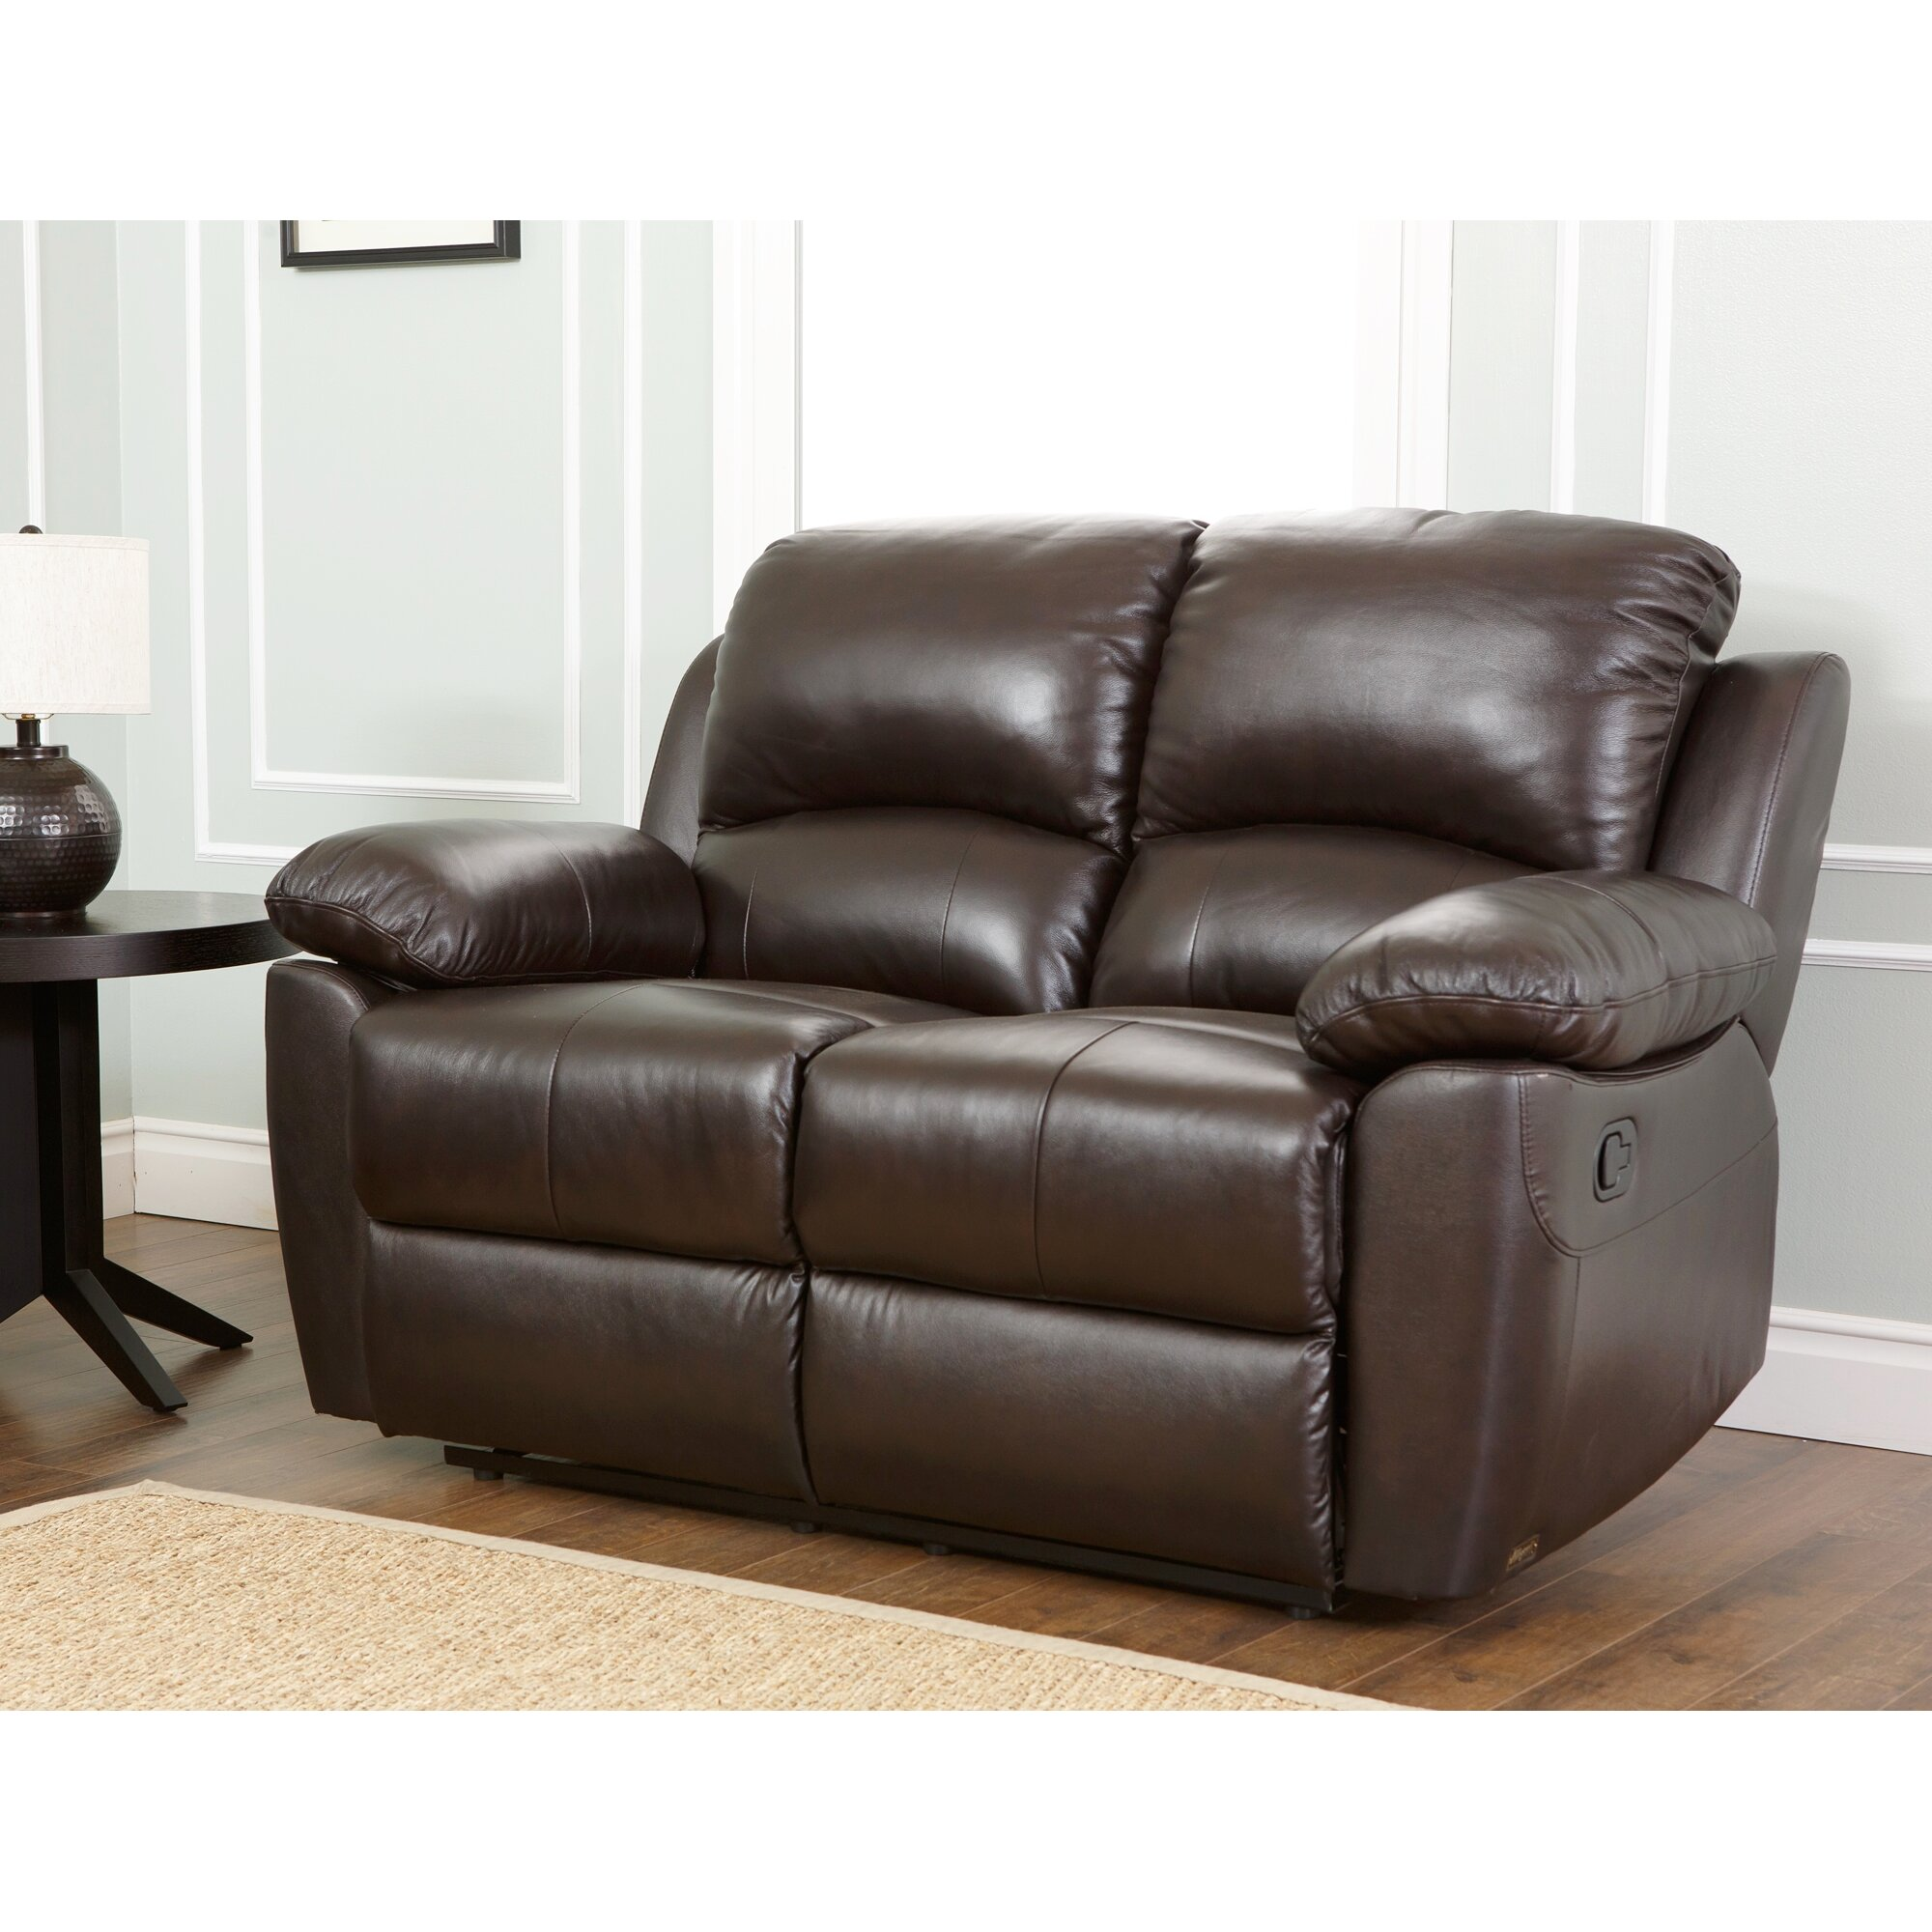 Abbyson living westwood leather reclining loveseat for Abbyson living sedona leather chaise recliner